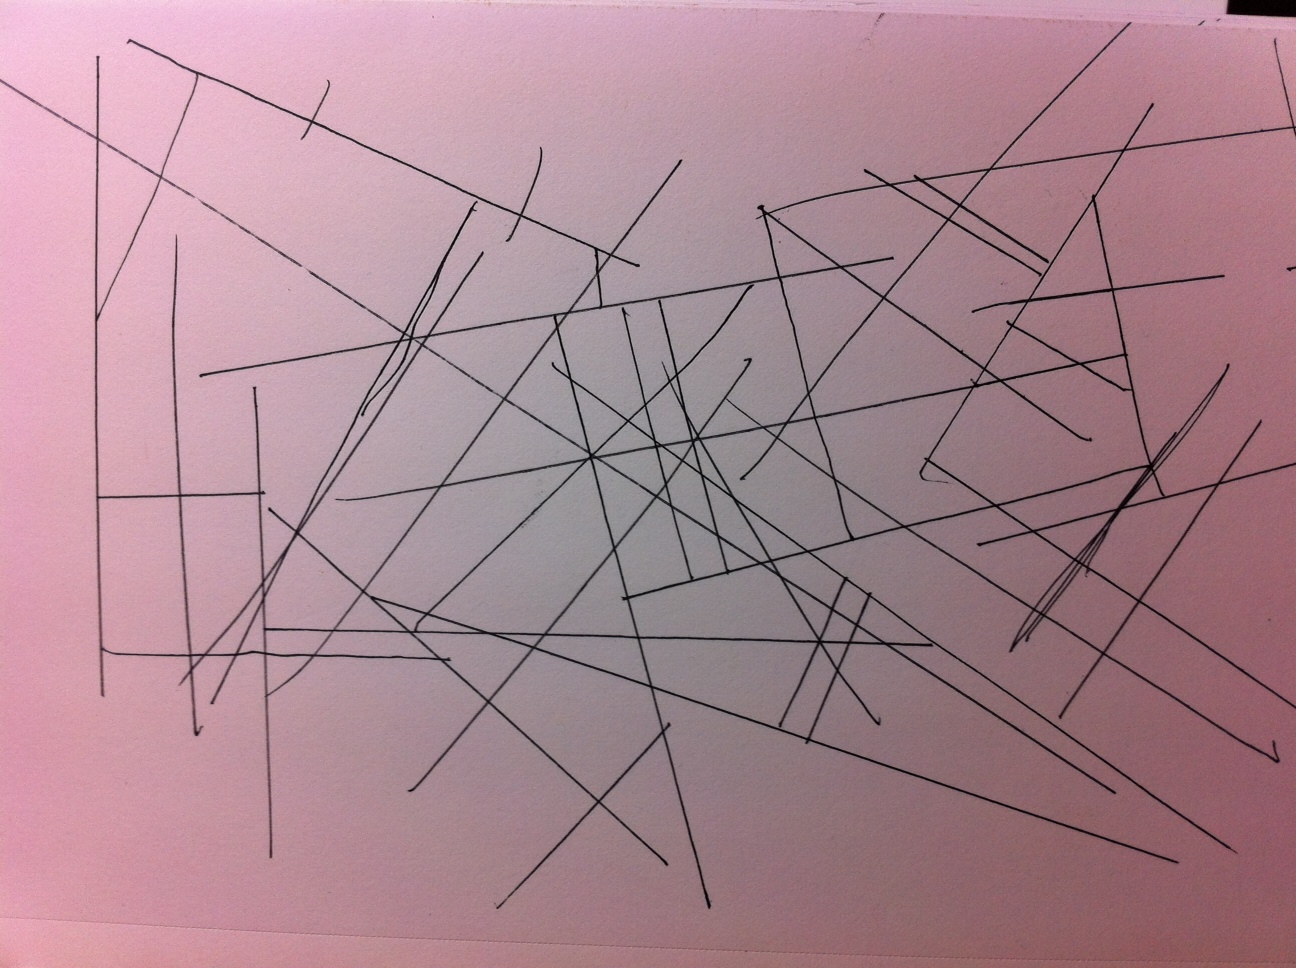 Introduction To Line Drawing Algorithm : Blog cmu ems2 fall 2012 section c prof. paolo pedercini's